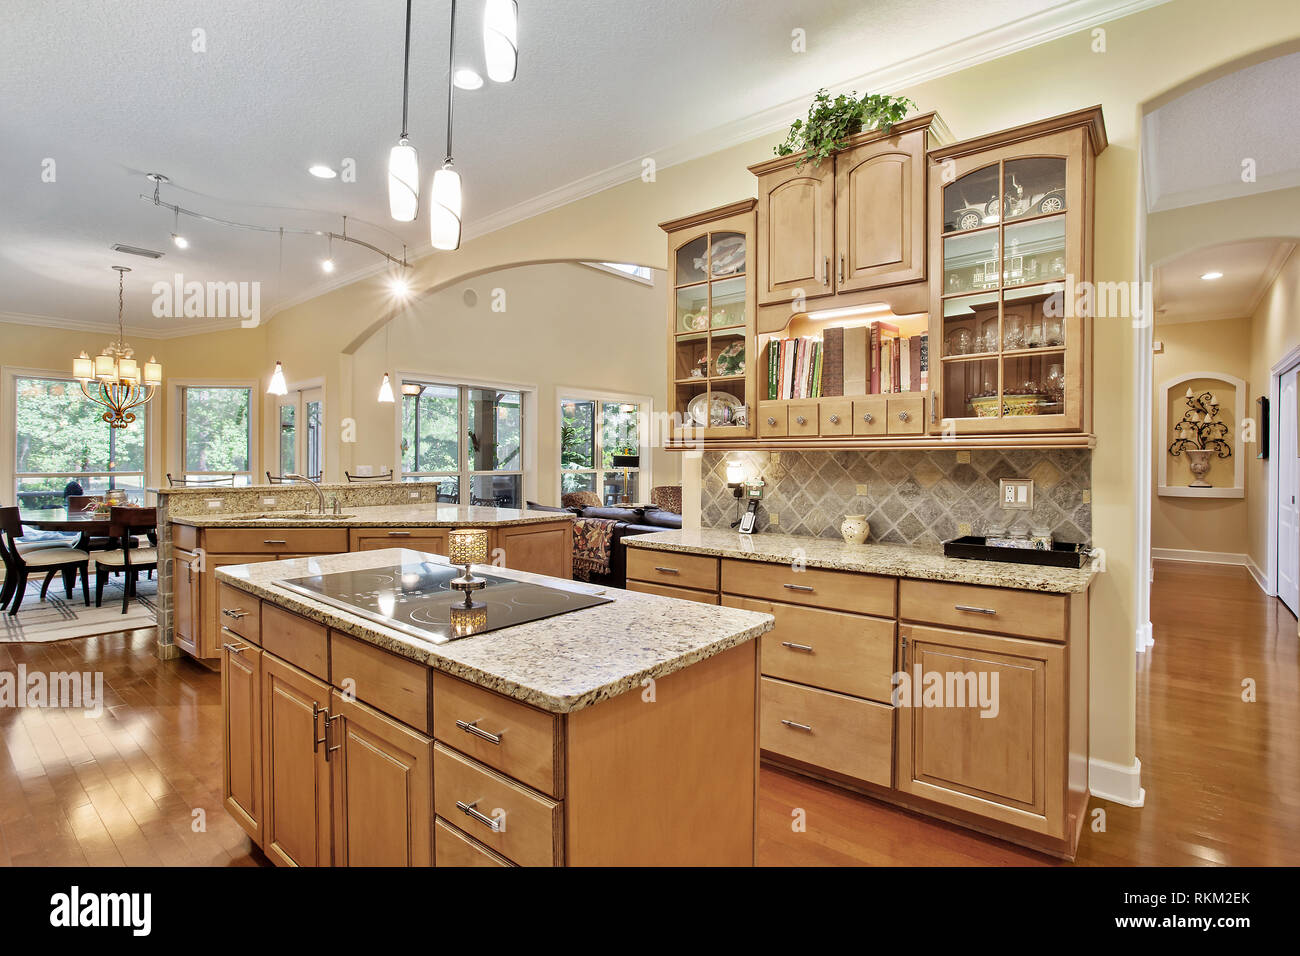 Modern Kitchen Home Interior with Hardwood and Wooden Cabinets